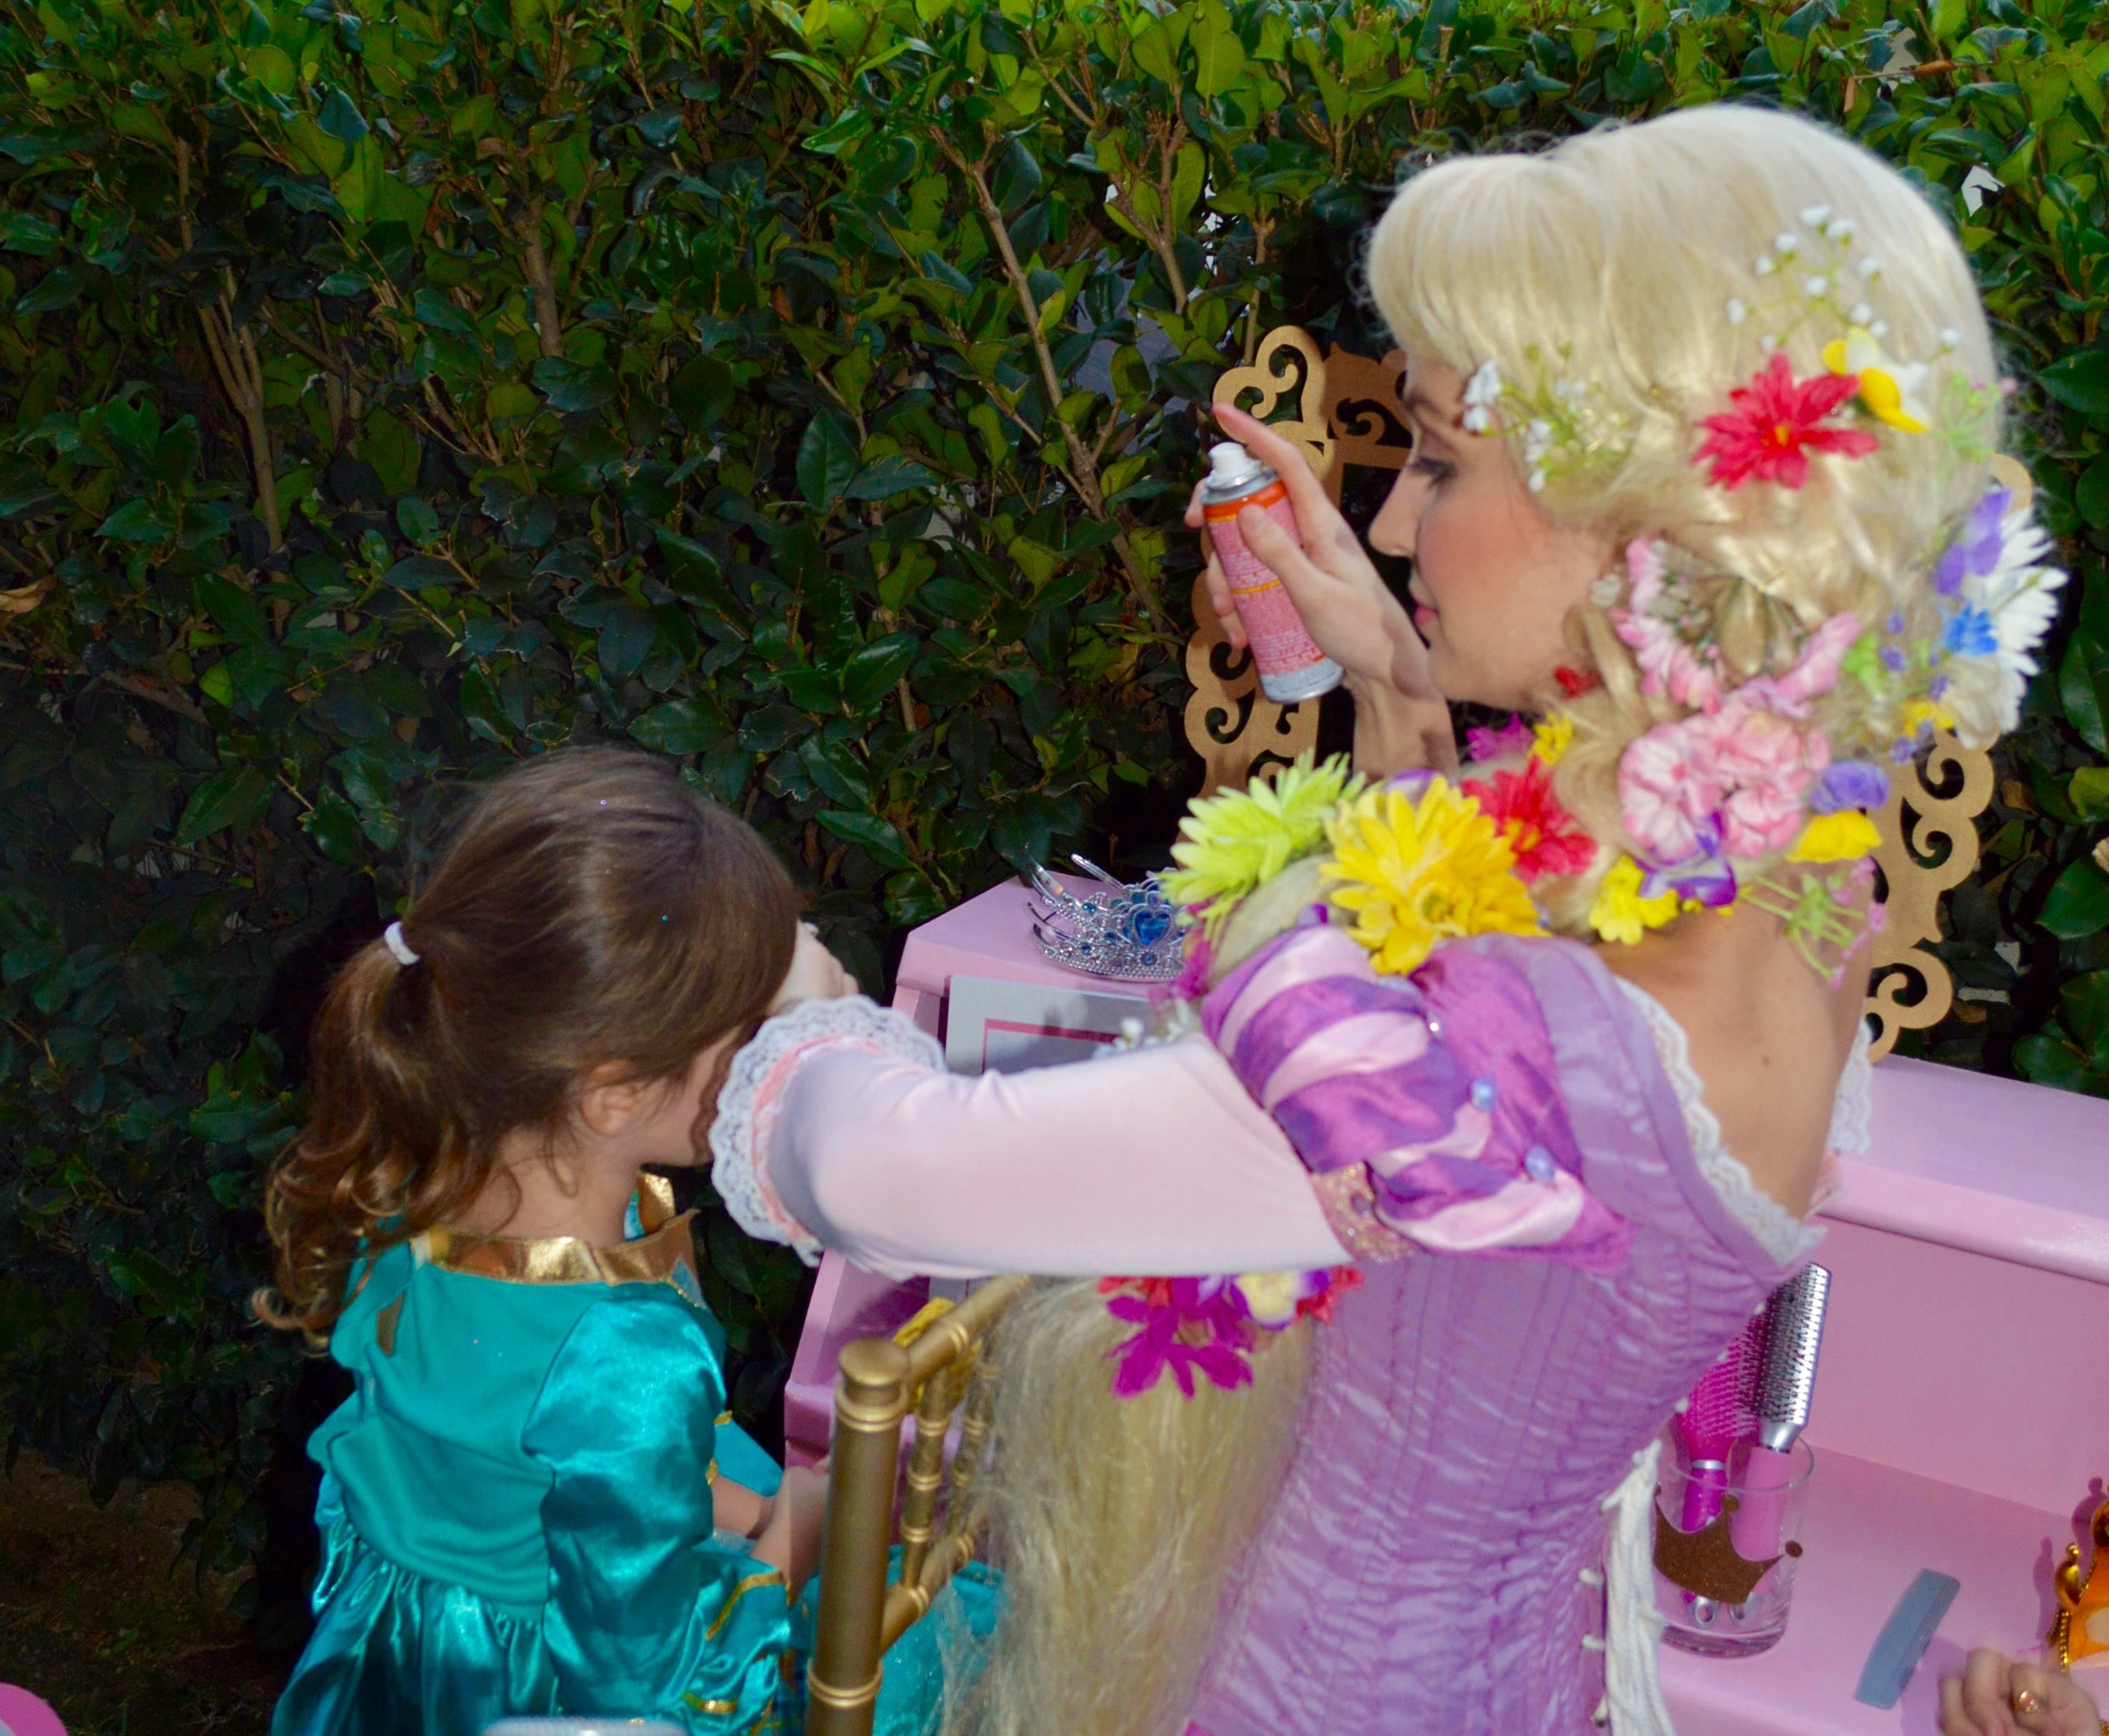 Who better to style your long locks than Rapunzel herself?! Rapunzel appeared courtesy of  Wishing Well Entertainment .